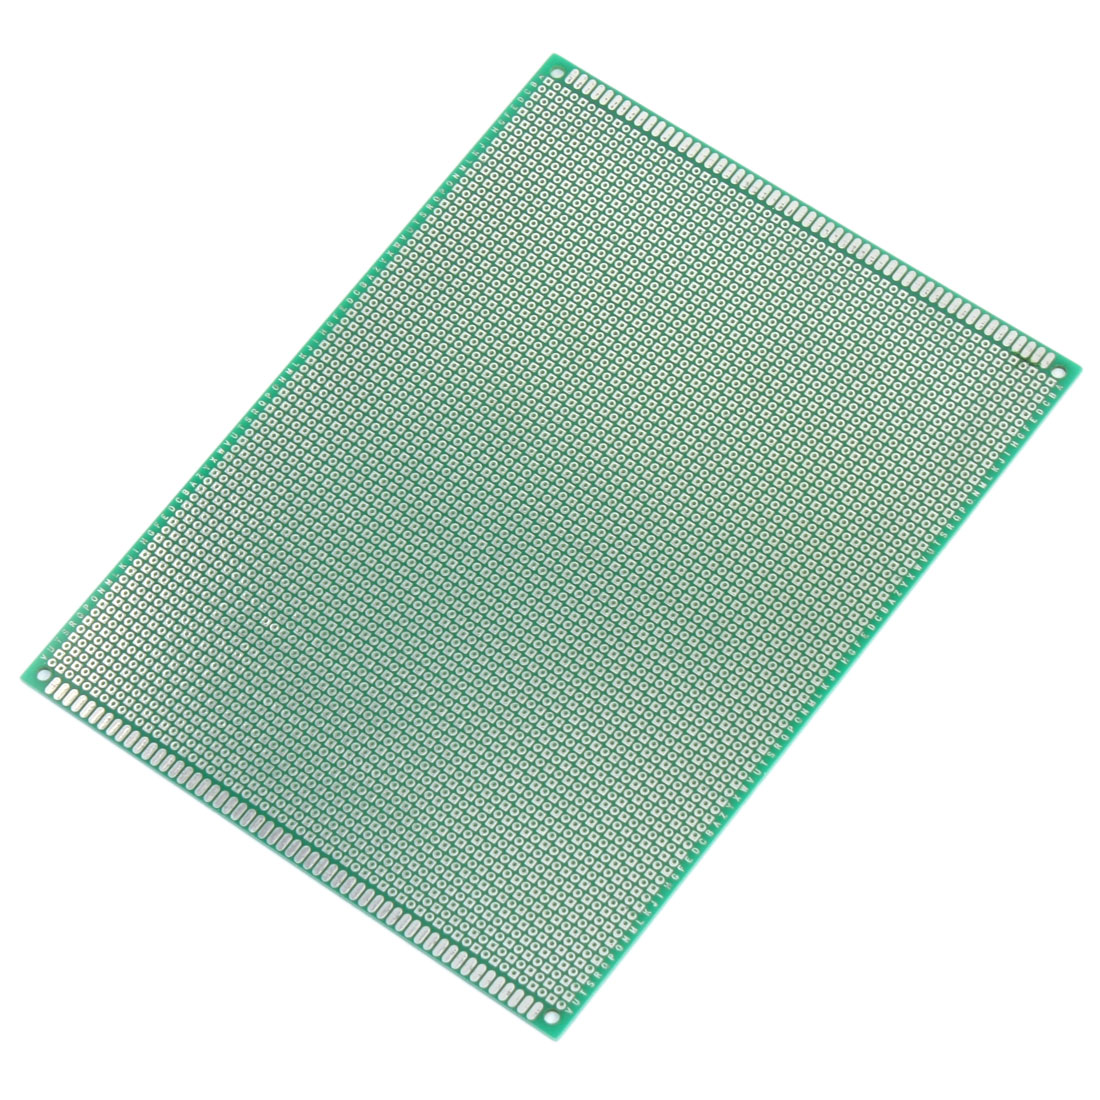 Single Side Universal Prototype Paper PCB Print Circuit Board 15x20cm